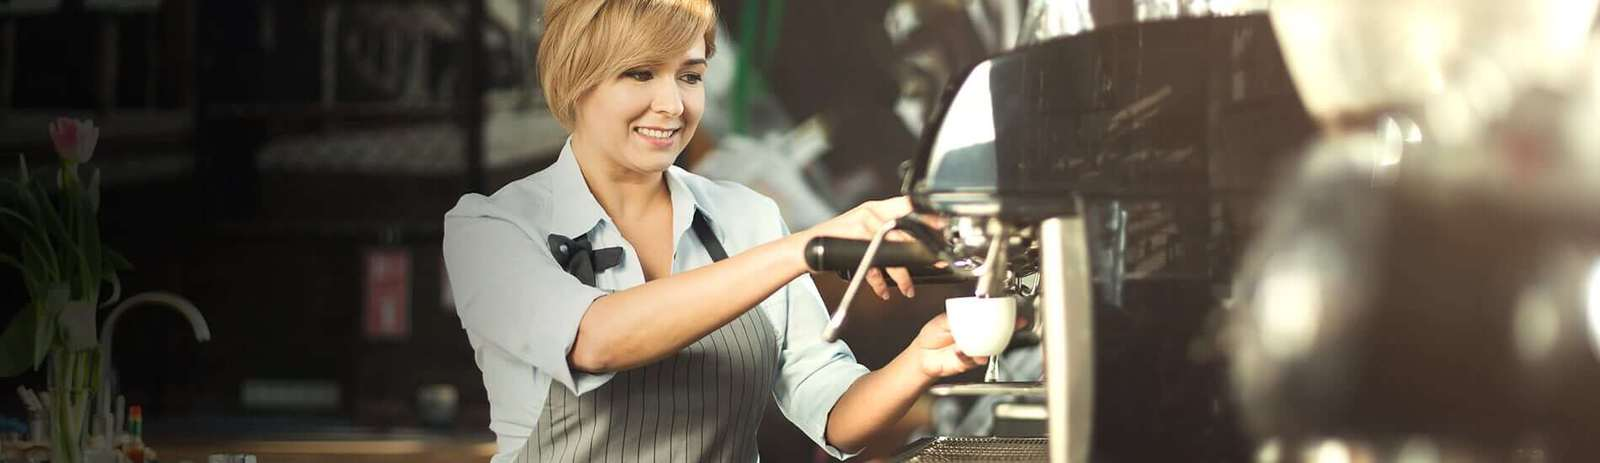 How to Find the Best Commercial Coffee Machine For Cafes